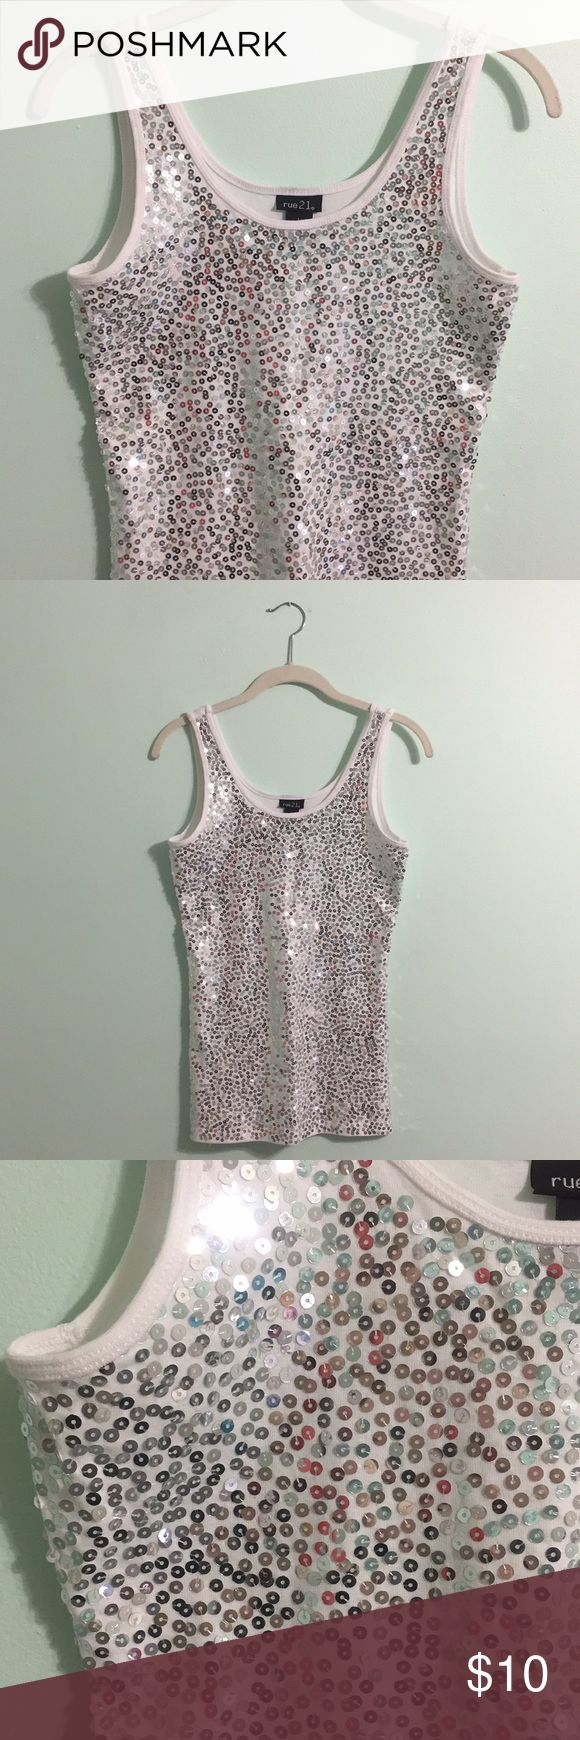 Best 25+ Sequin tank tops ideas on Pinterest | Sequin tank ...